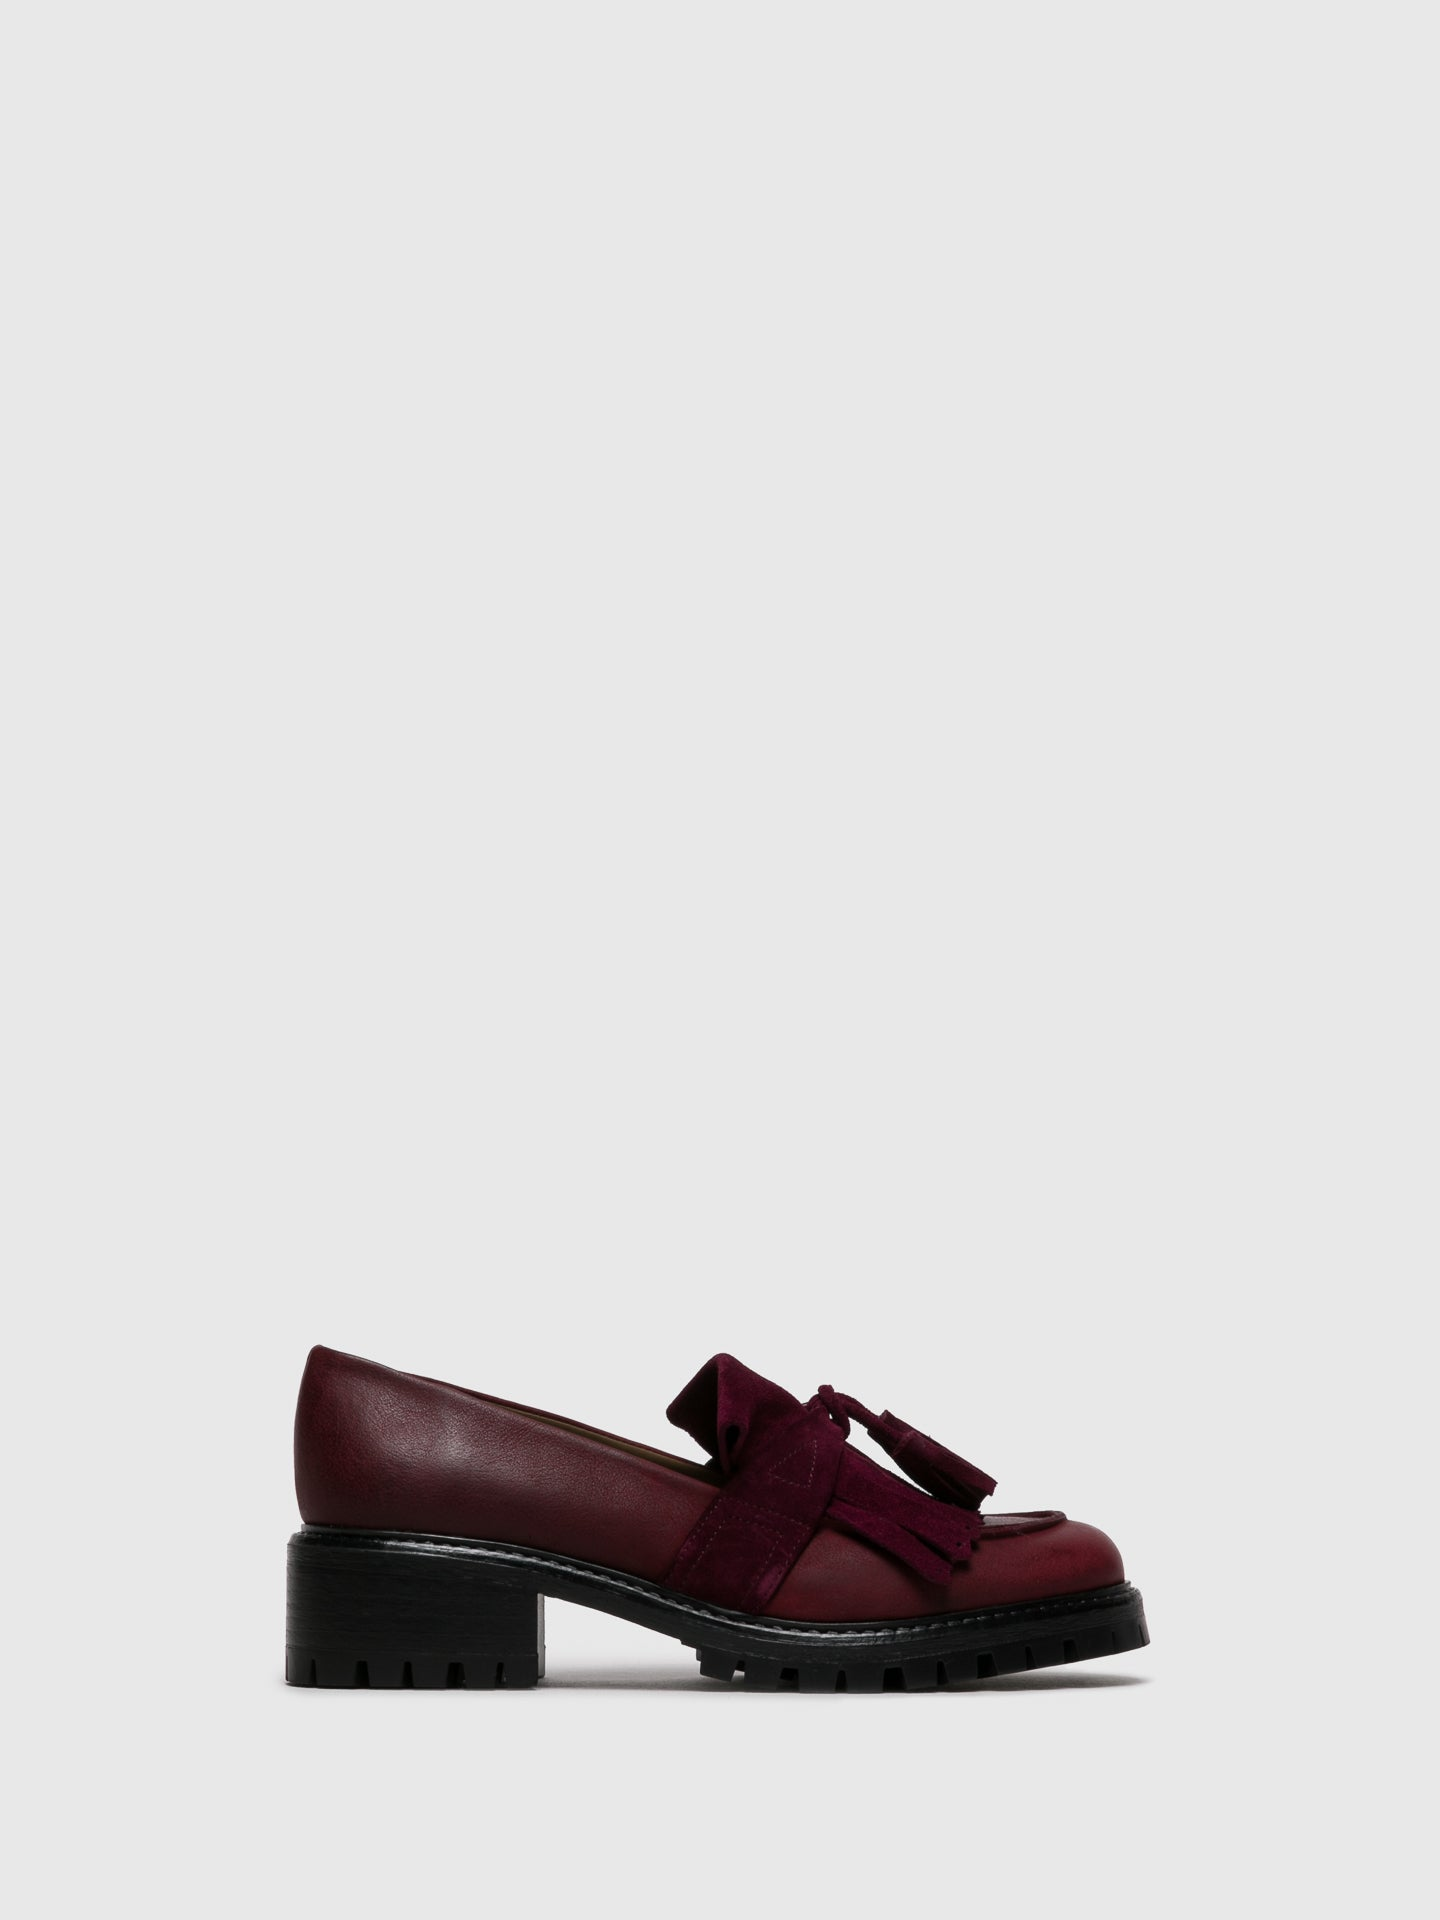 JJ Heitor Zapatos Loafers en color Burdeos